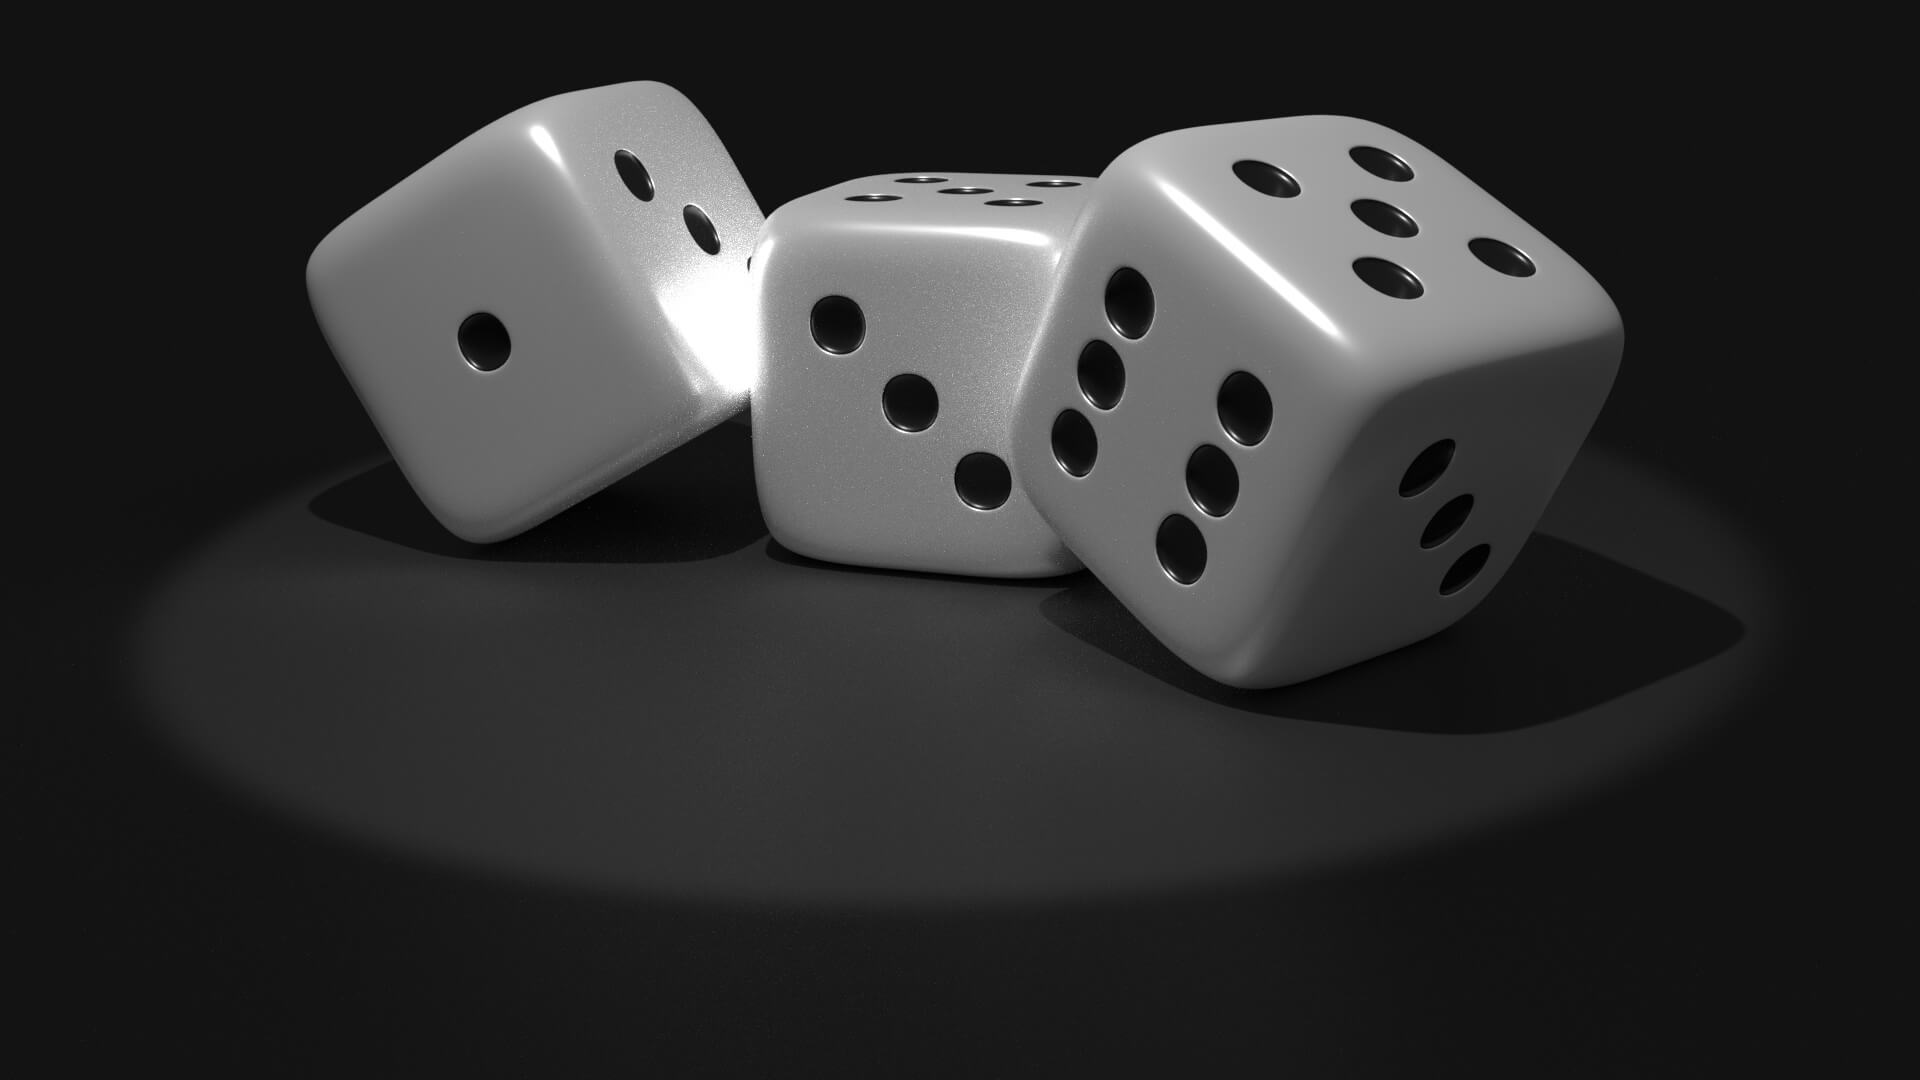 Probability as a Basis for Meaningful Action